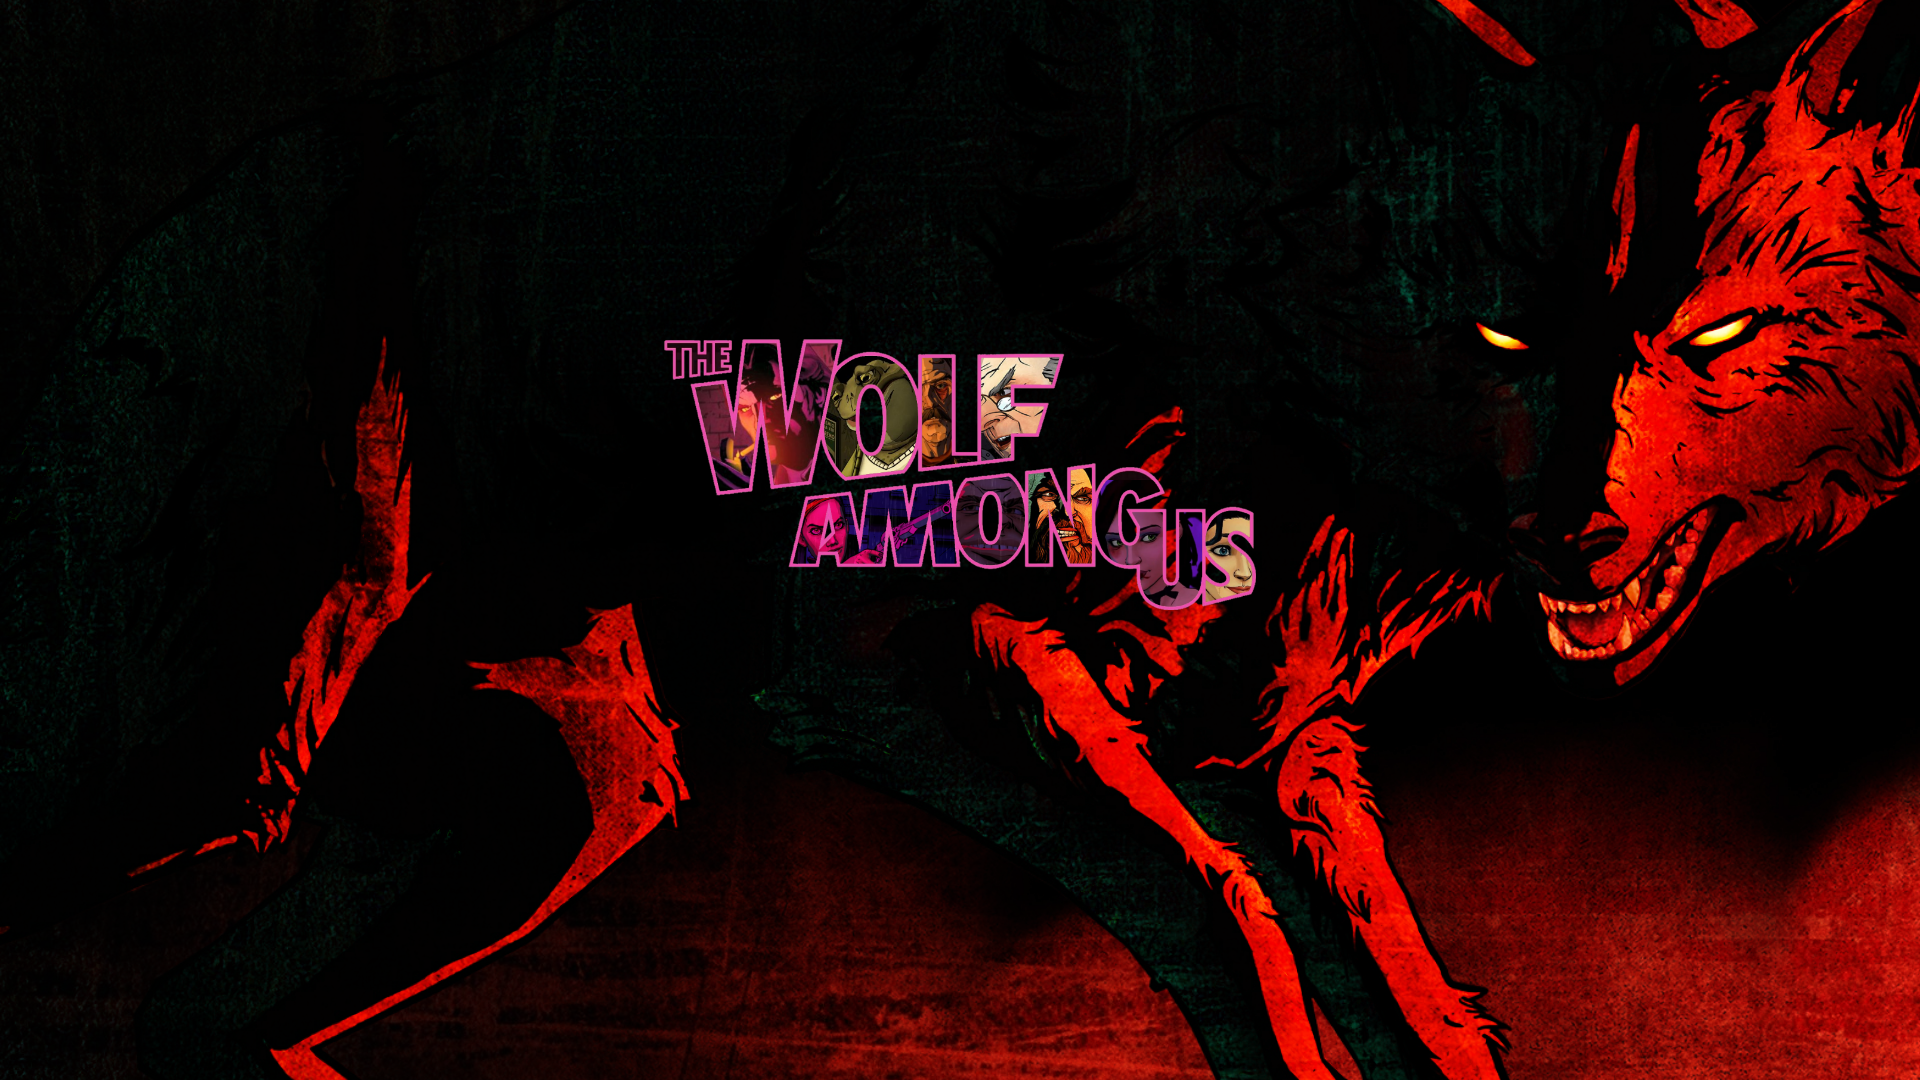 The Wolf Among Us Wallpapers Top Free The Wolf Among Us Backgrounds Wallpaperaccess